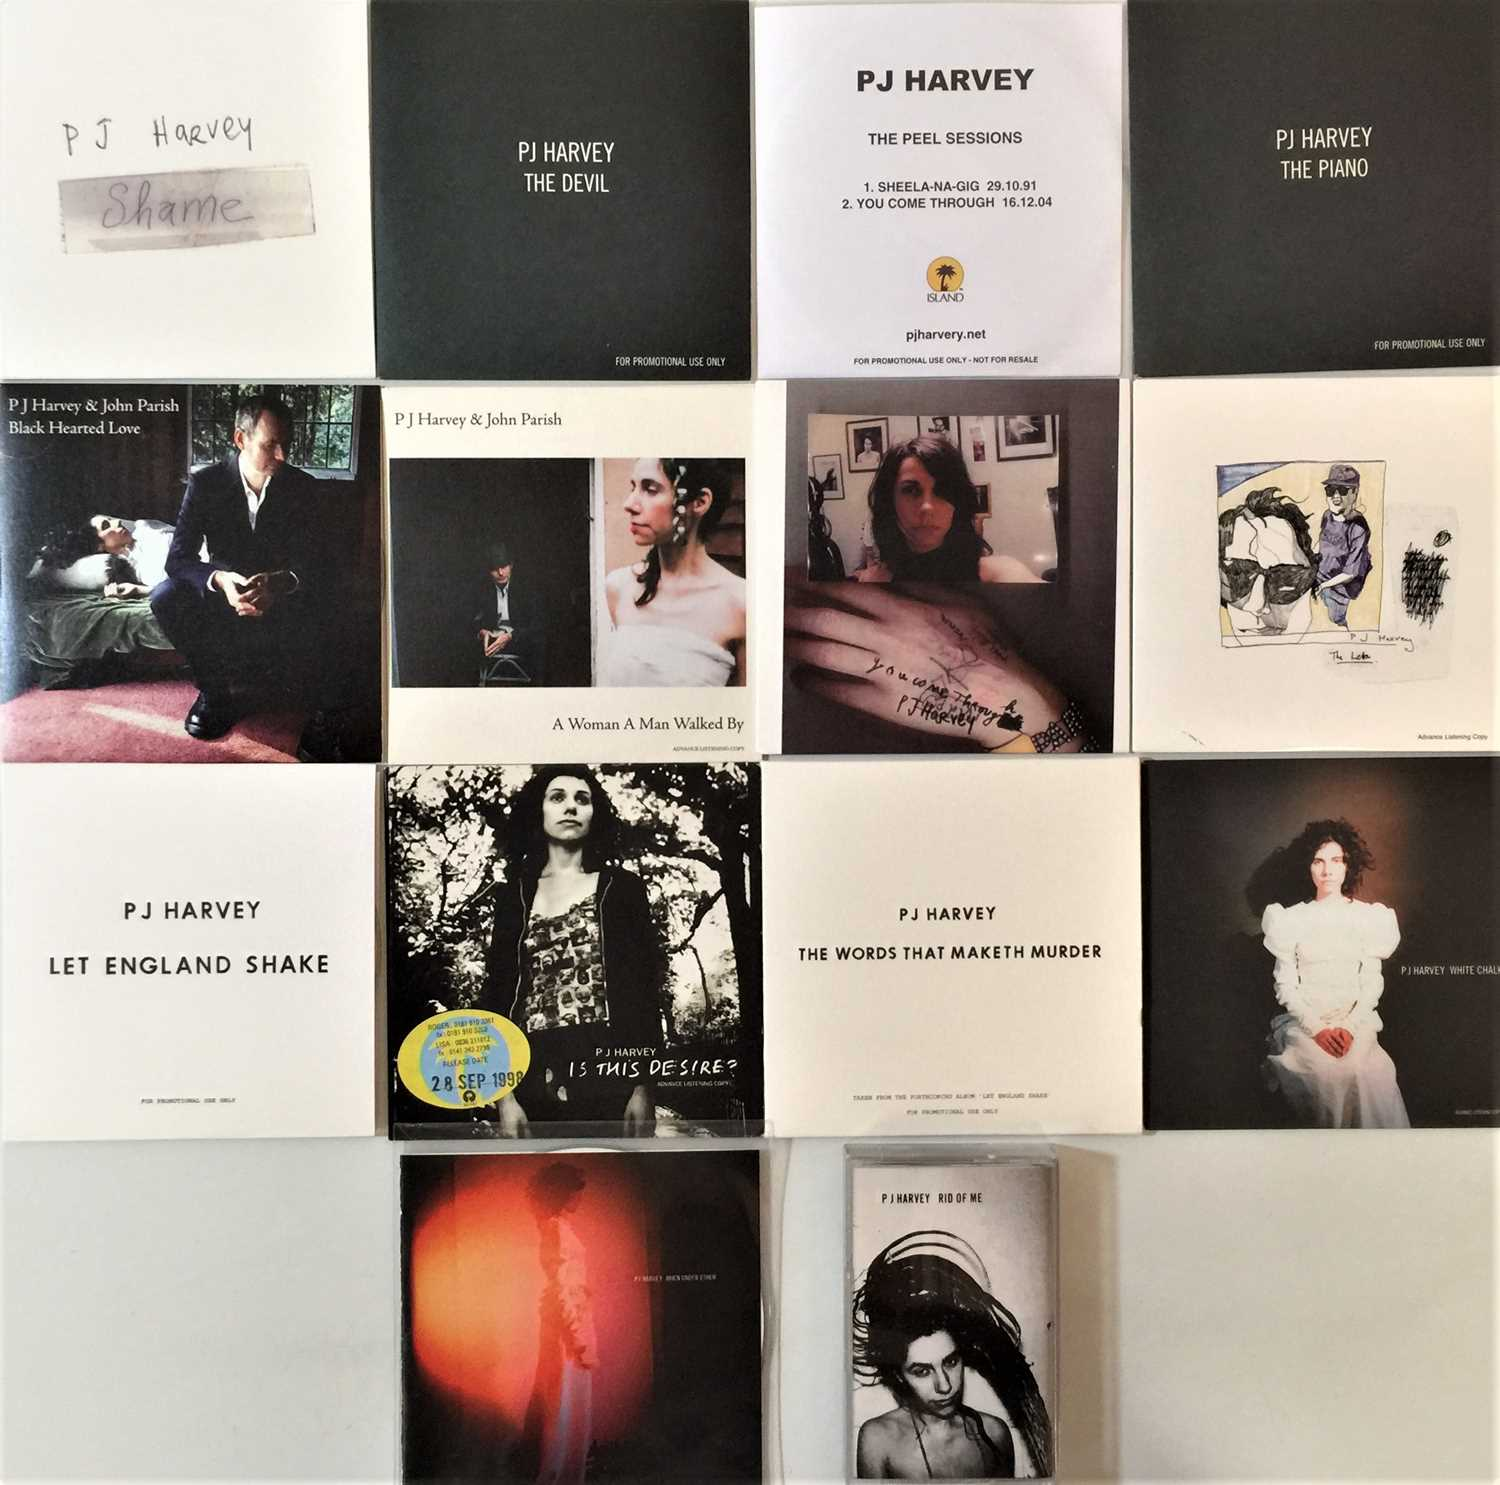 PJ HARVEY - CD COLLECTION (INC PROMOS) - Image 3 of 3